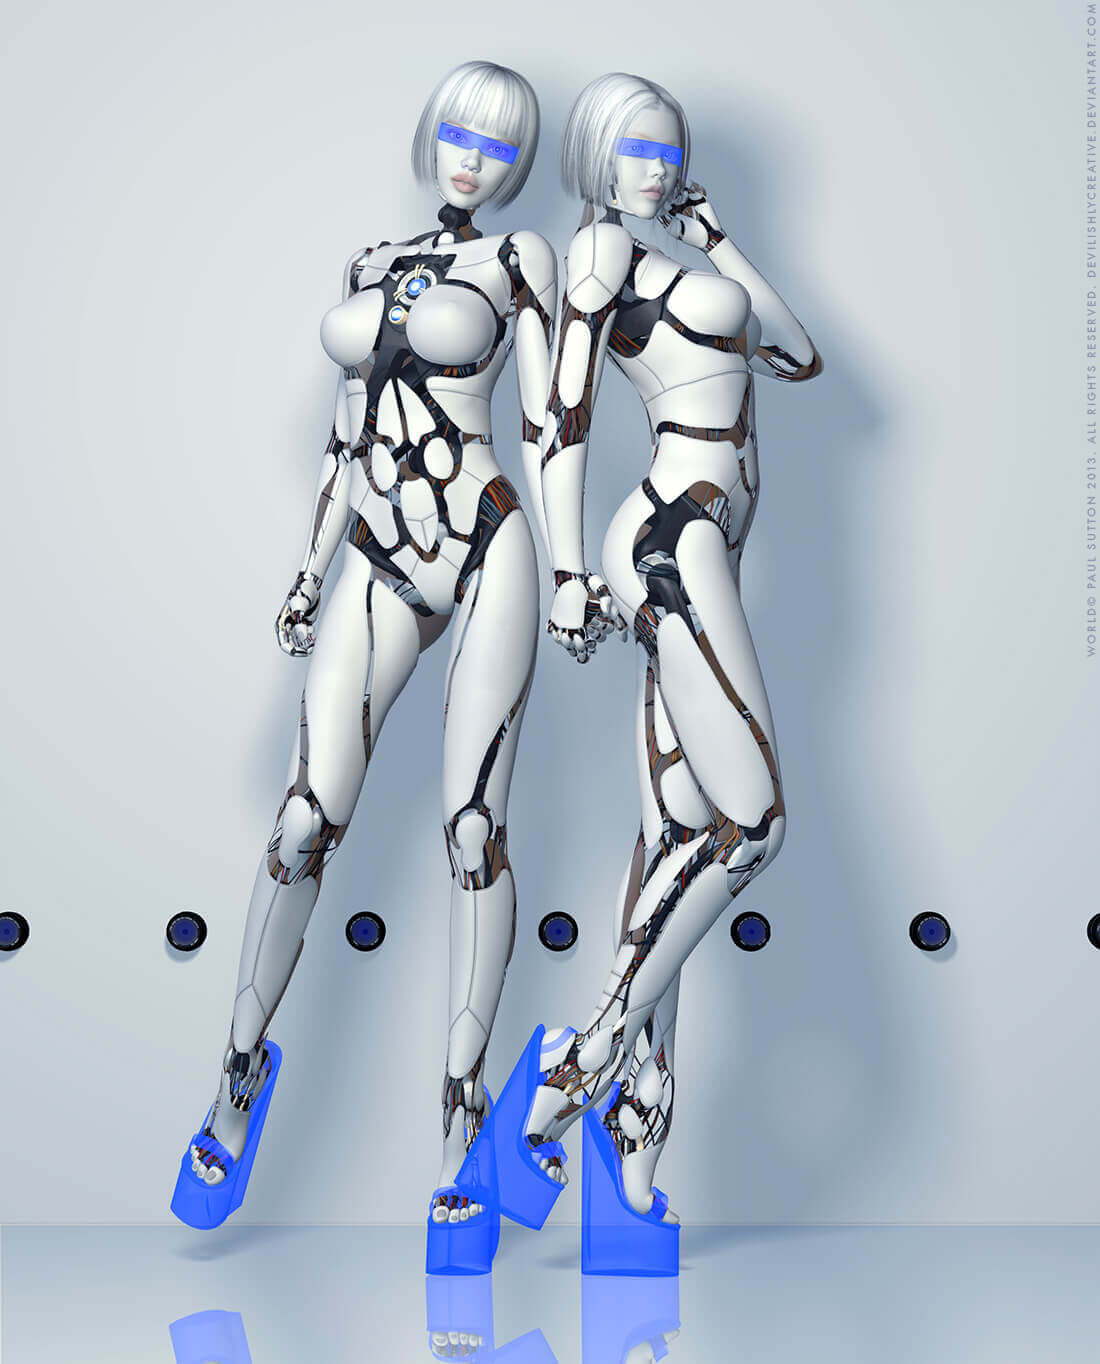 Two fembot stand together wearing platform heels.